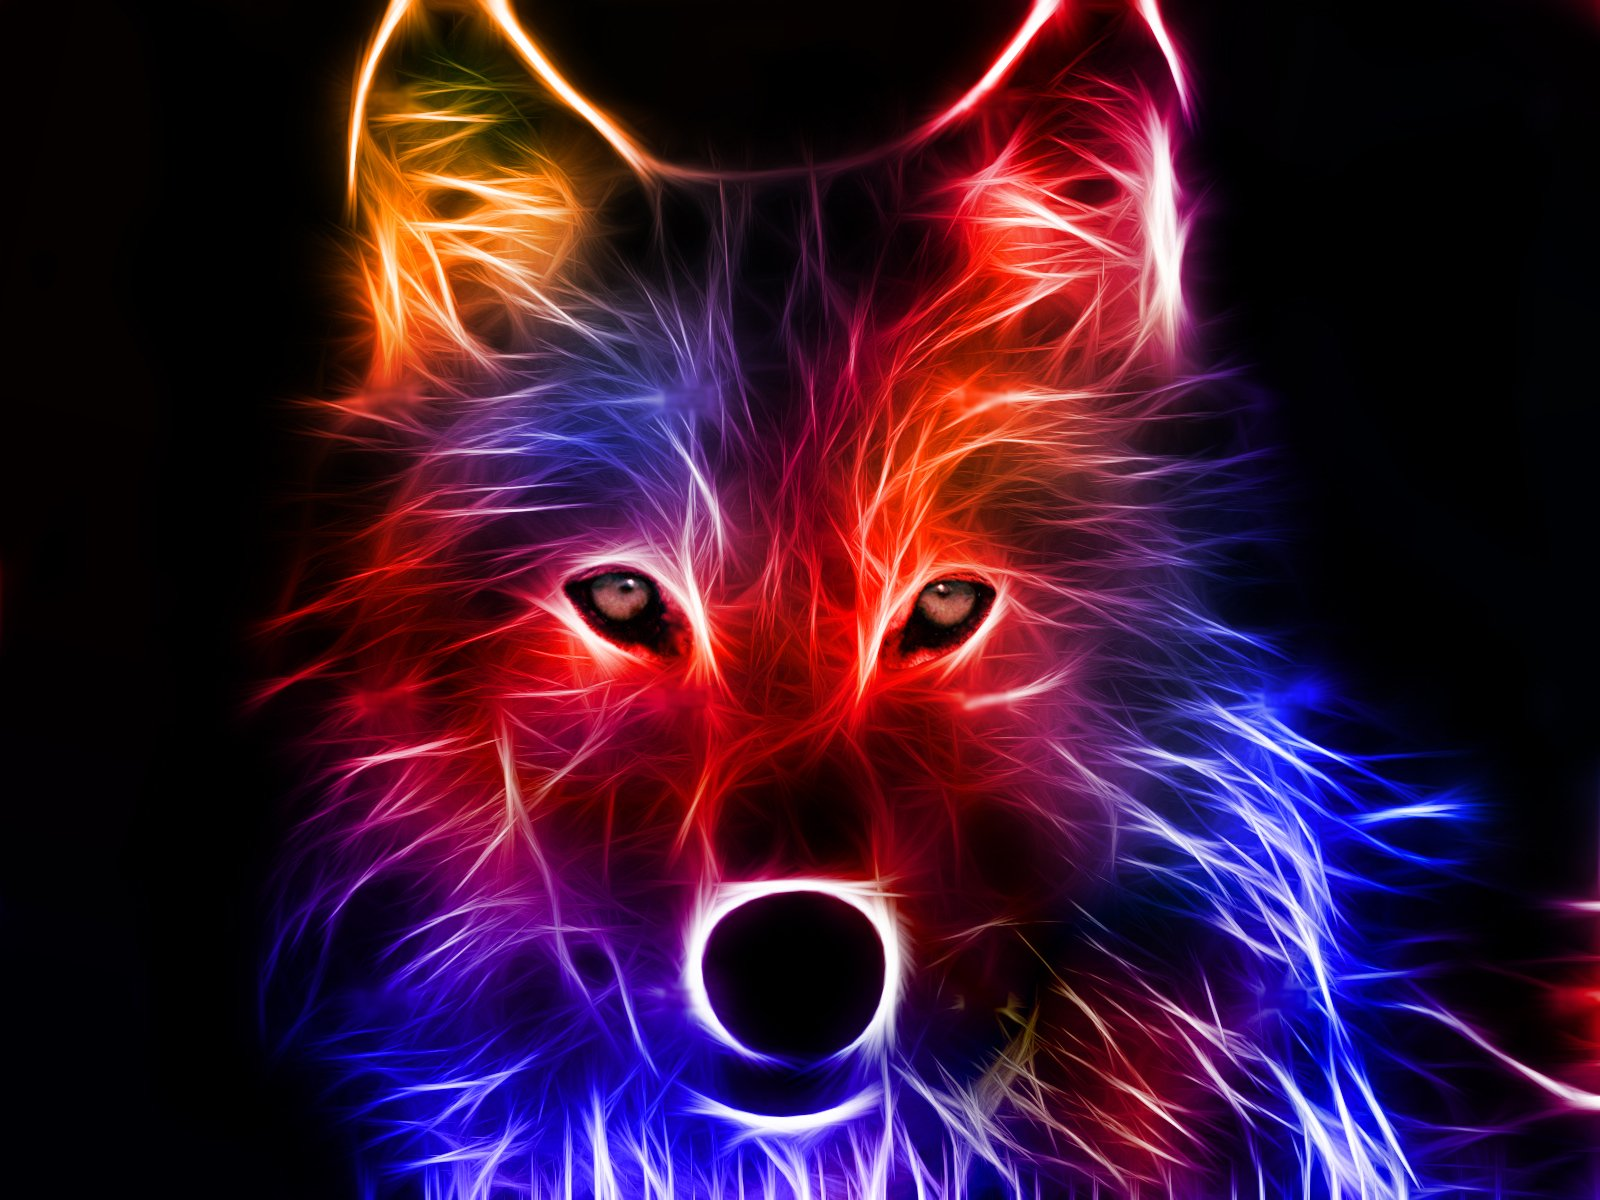 Animal - Wolf  Abstract Fractal Digital Colorful Wallpaper